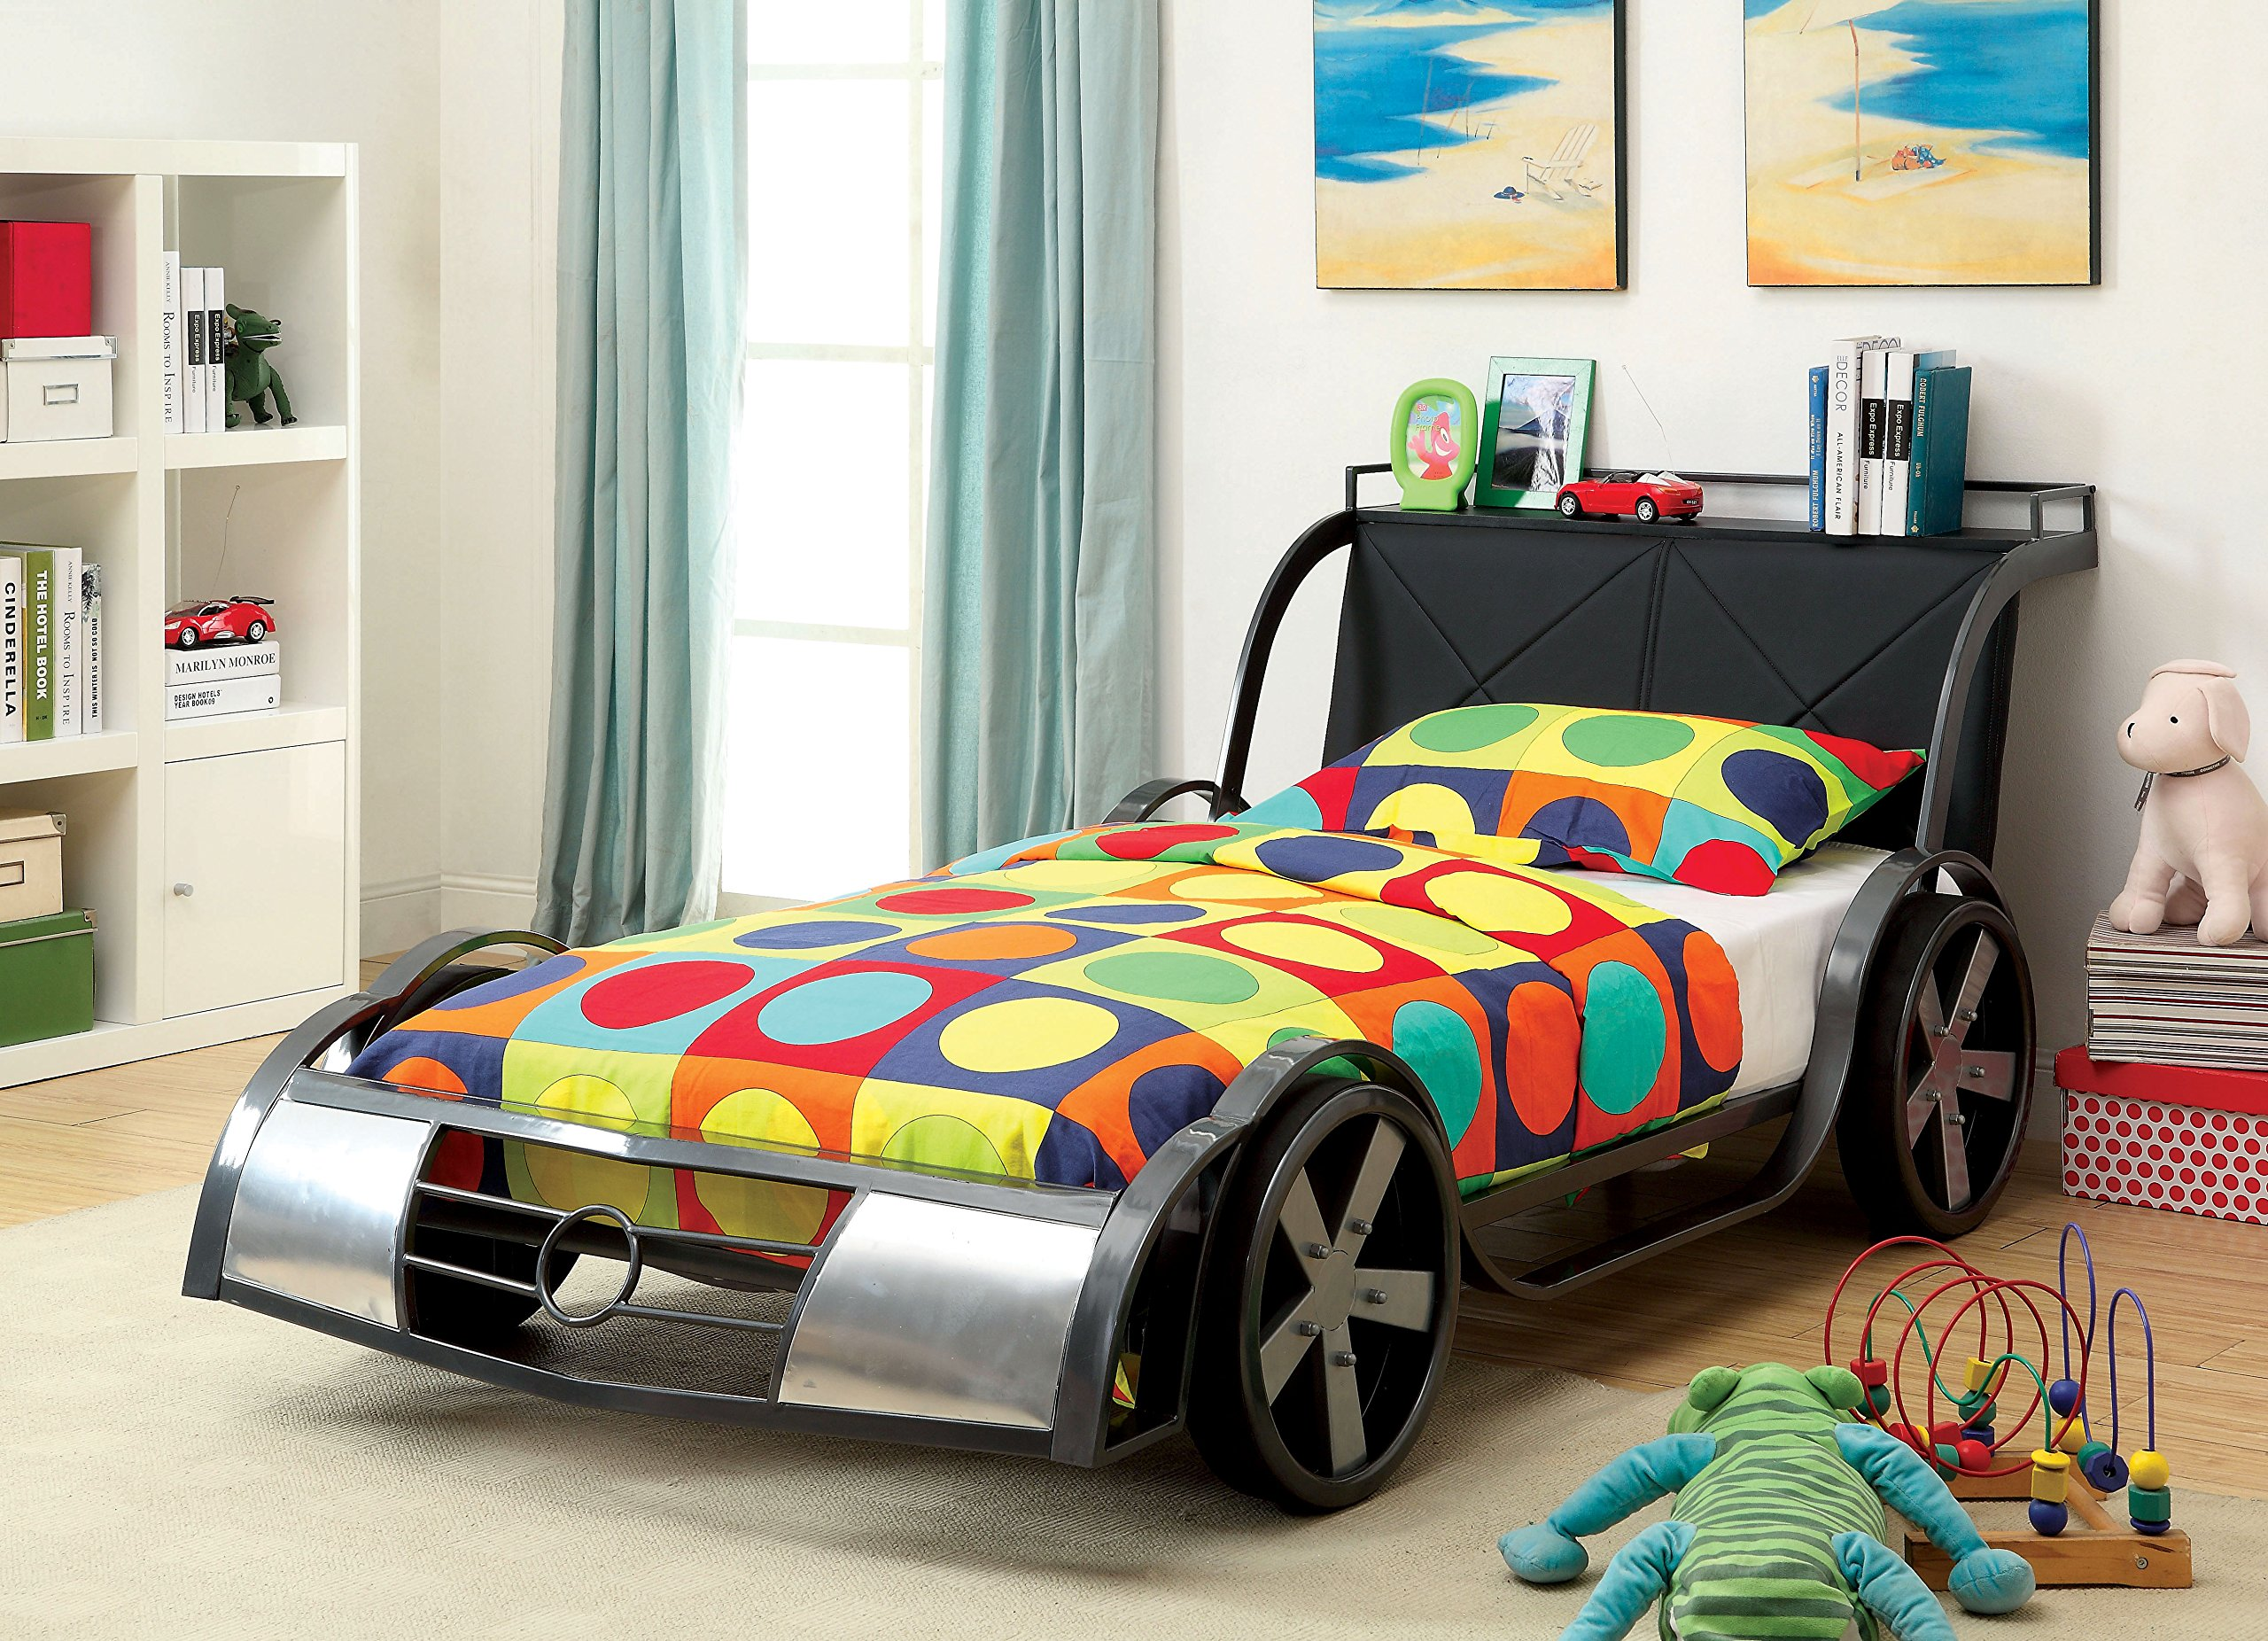 Furniture of America Racer 44 Metal Youth Bed, Twin by Furniture of America